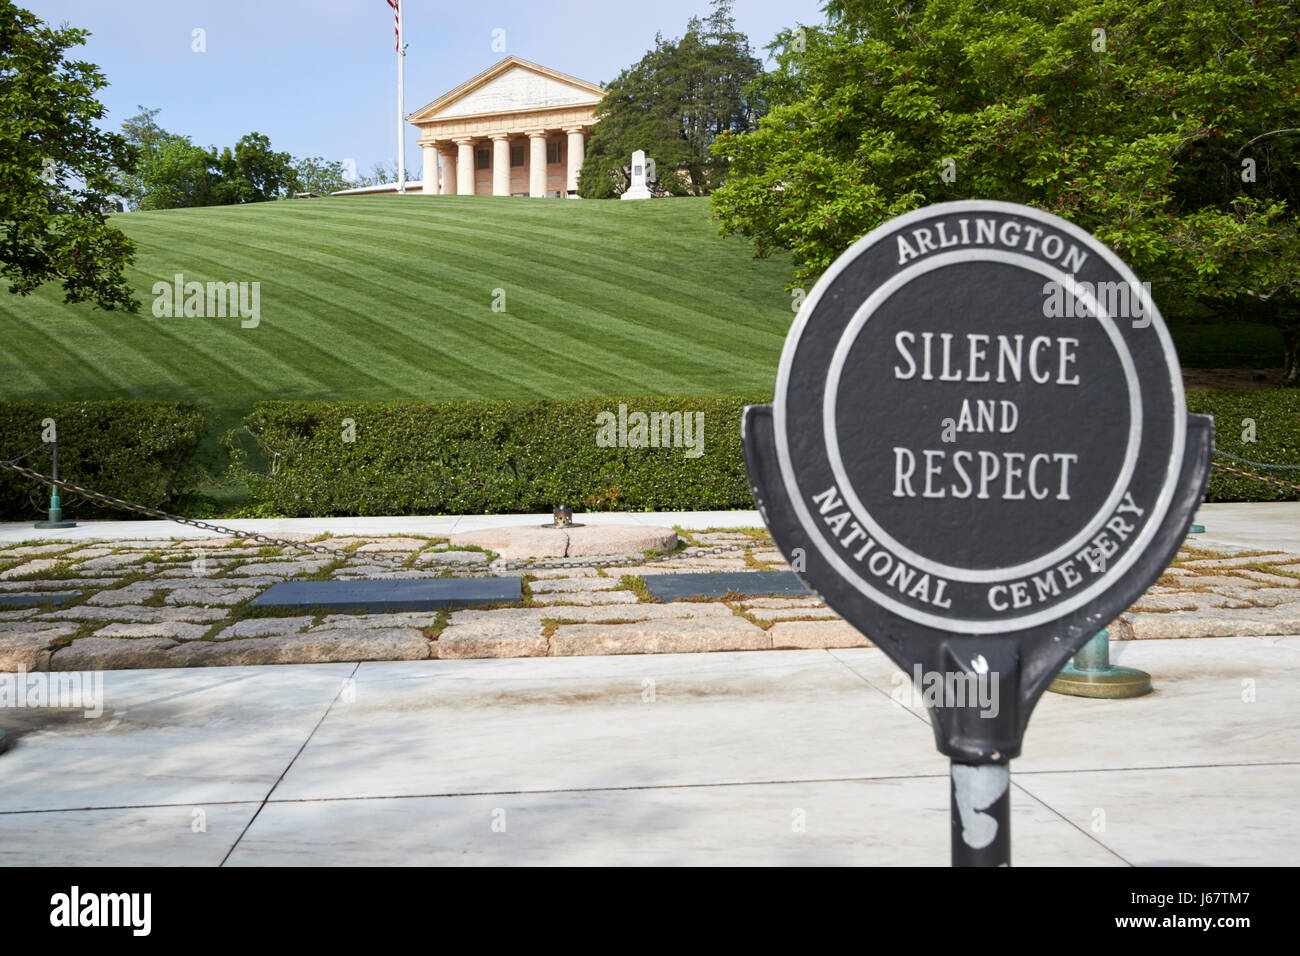 silence and respect sign in front of jfk John F, Kennedy gravesite and arlington house arlington cemetery Washington - Stock Image